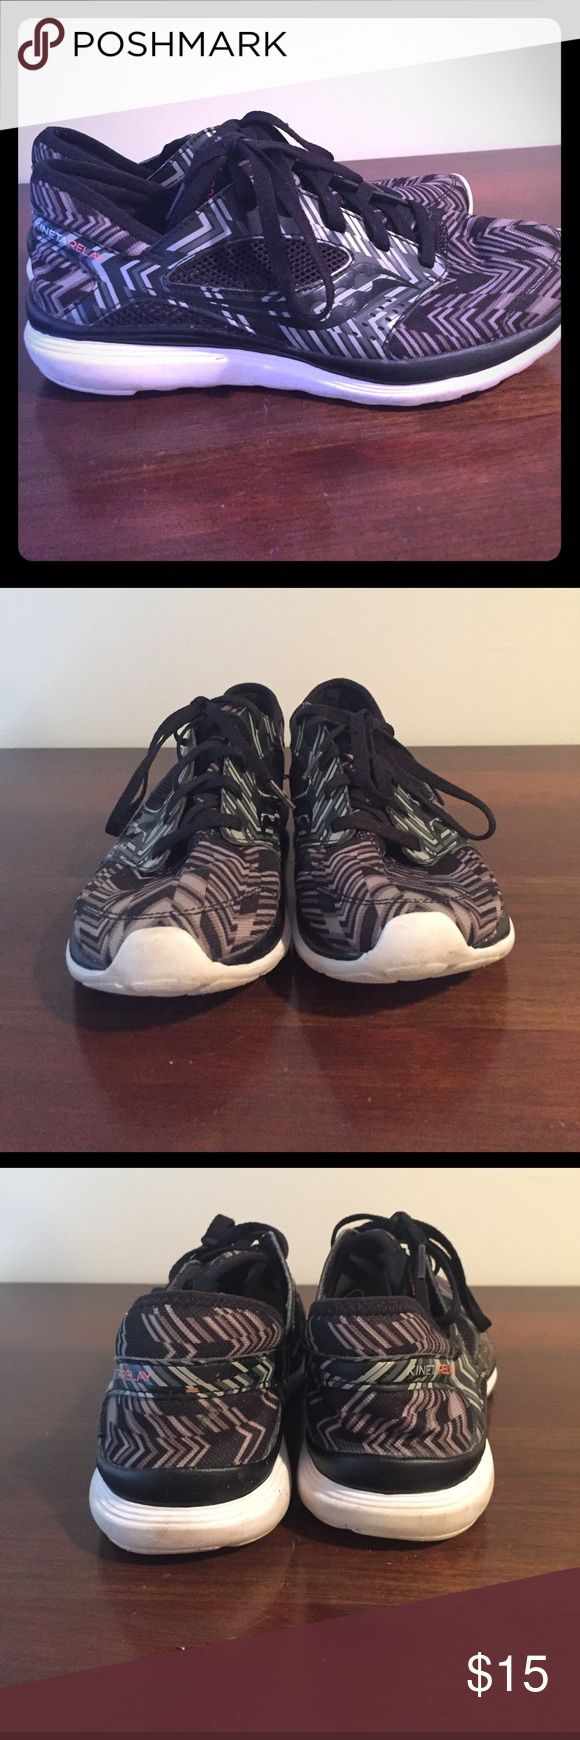 Saucony Kineta Relay - Black Chevron- 9.5 These are seriously the most comfortable sneakers! They're not made for running, but are great to wear as a fashion sneaker or for post-run recovery. Black and white chevron print. Very good used condition! Saucony Shoes Sneakers